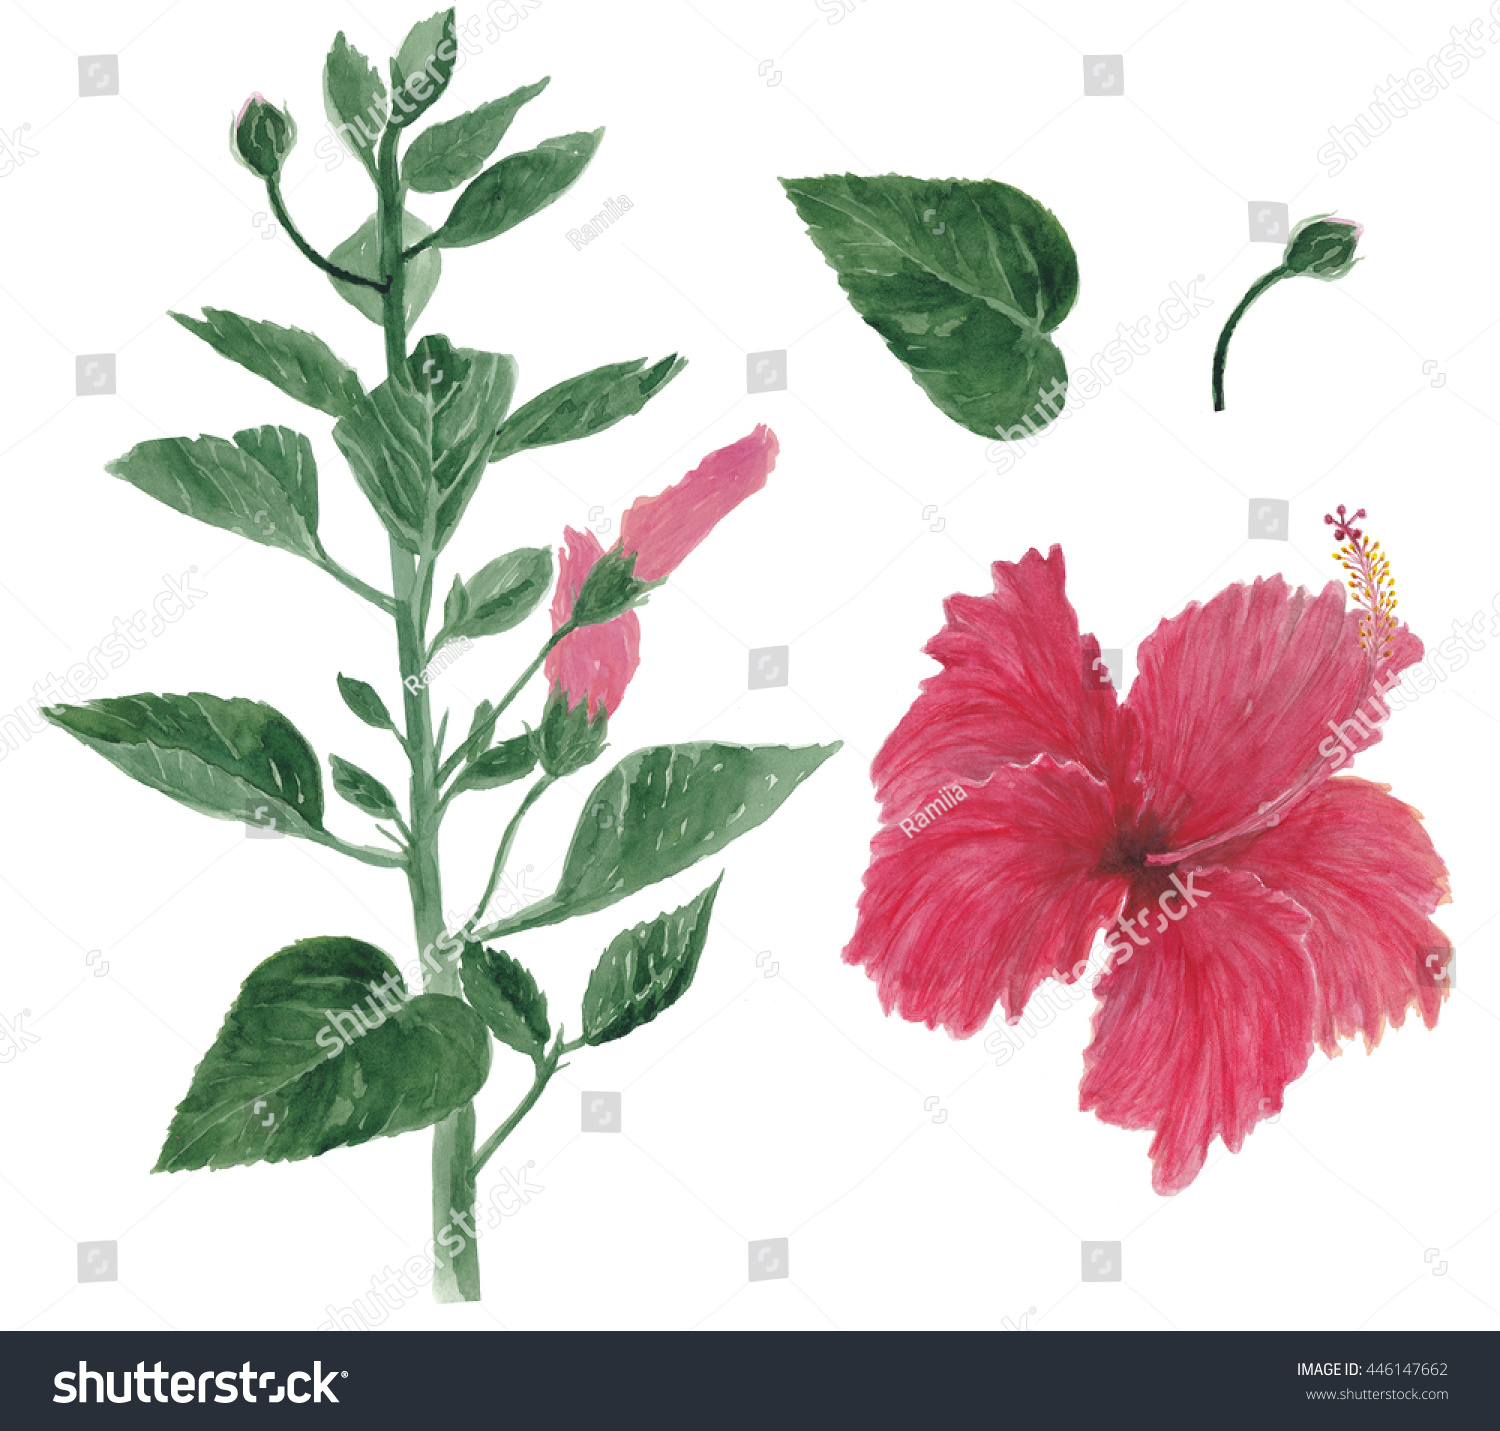 Watercolor painting red hibiscus flower branch stock illustration watercolor painting a red hibiscus flower and branch with leaves and buds isolated on white background izmirmasajfo